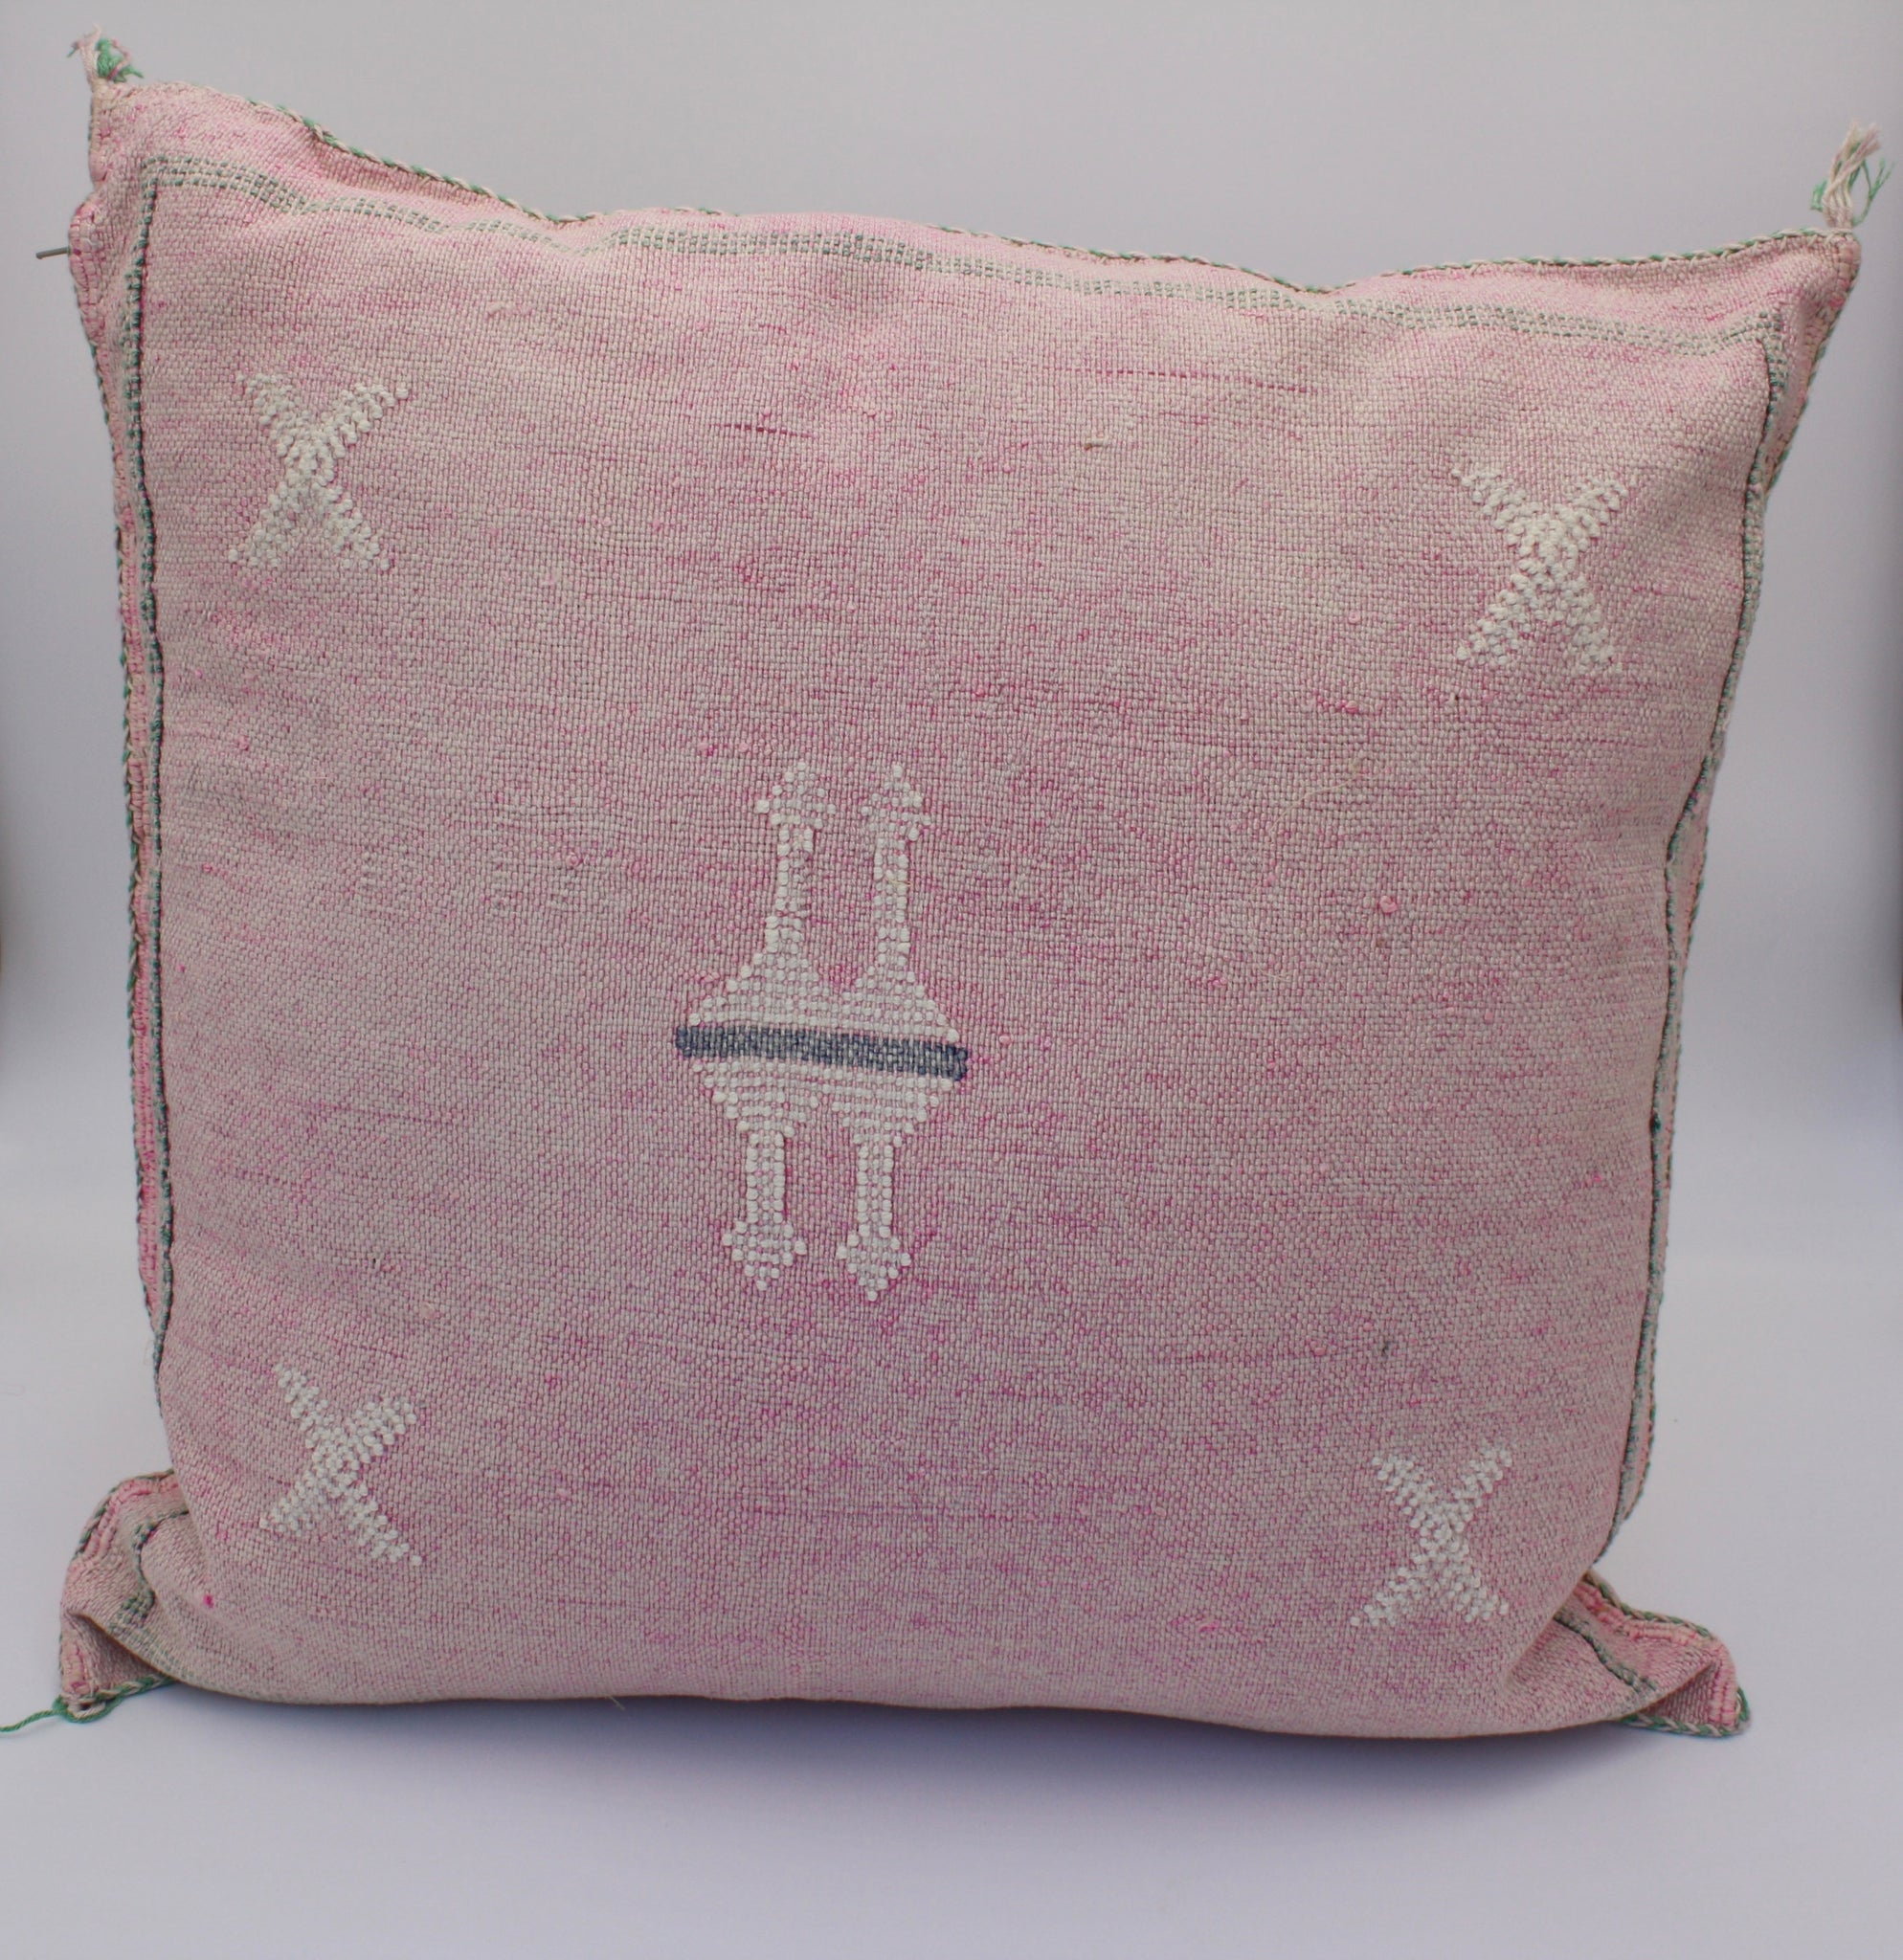 Cactus Silk Pillow - Faded Pink